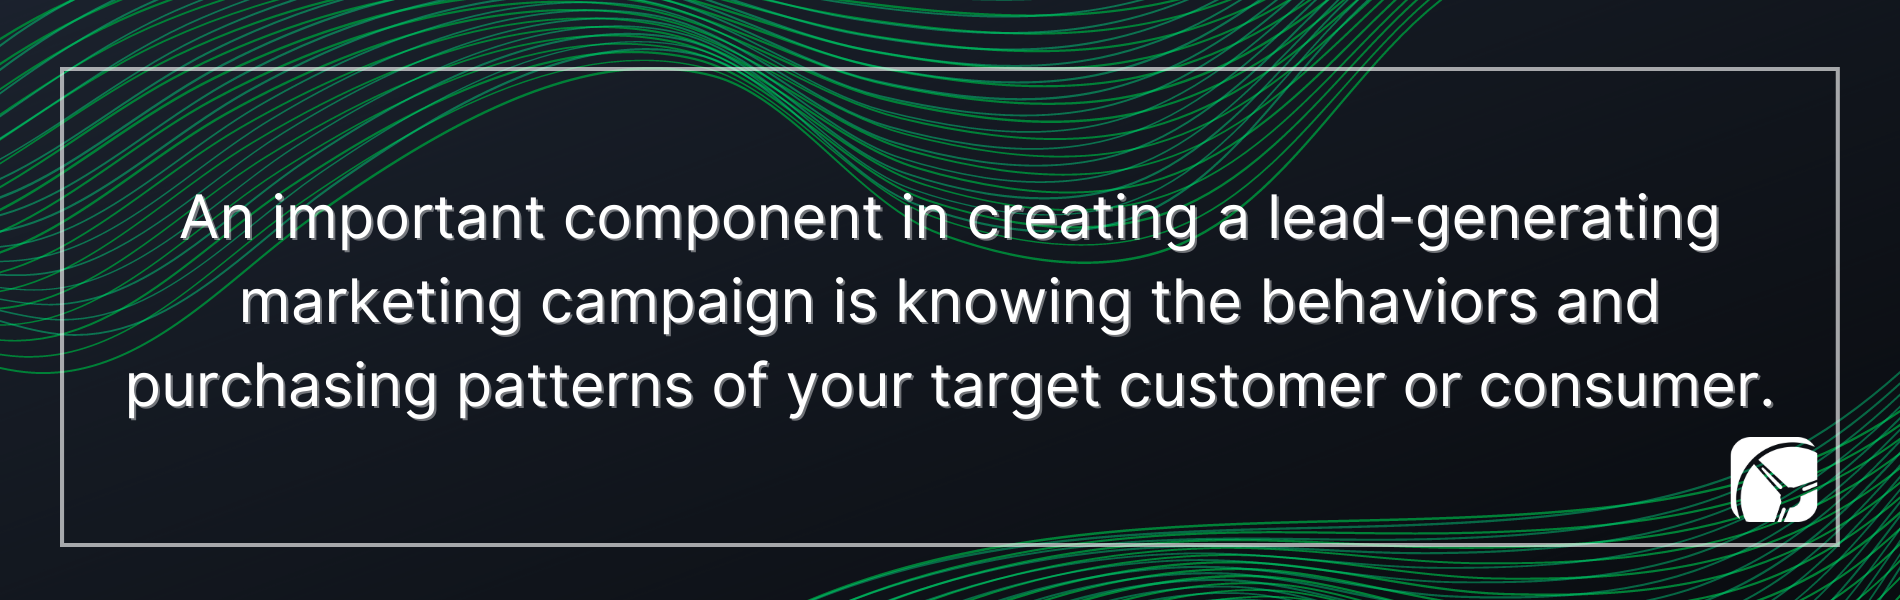 An important component in creating a lead-generating marketing campaign is knowing the behaviors and purchasing patterns of your target customer or consumer.